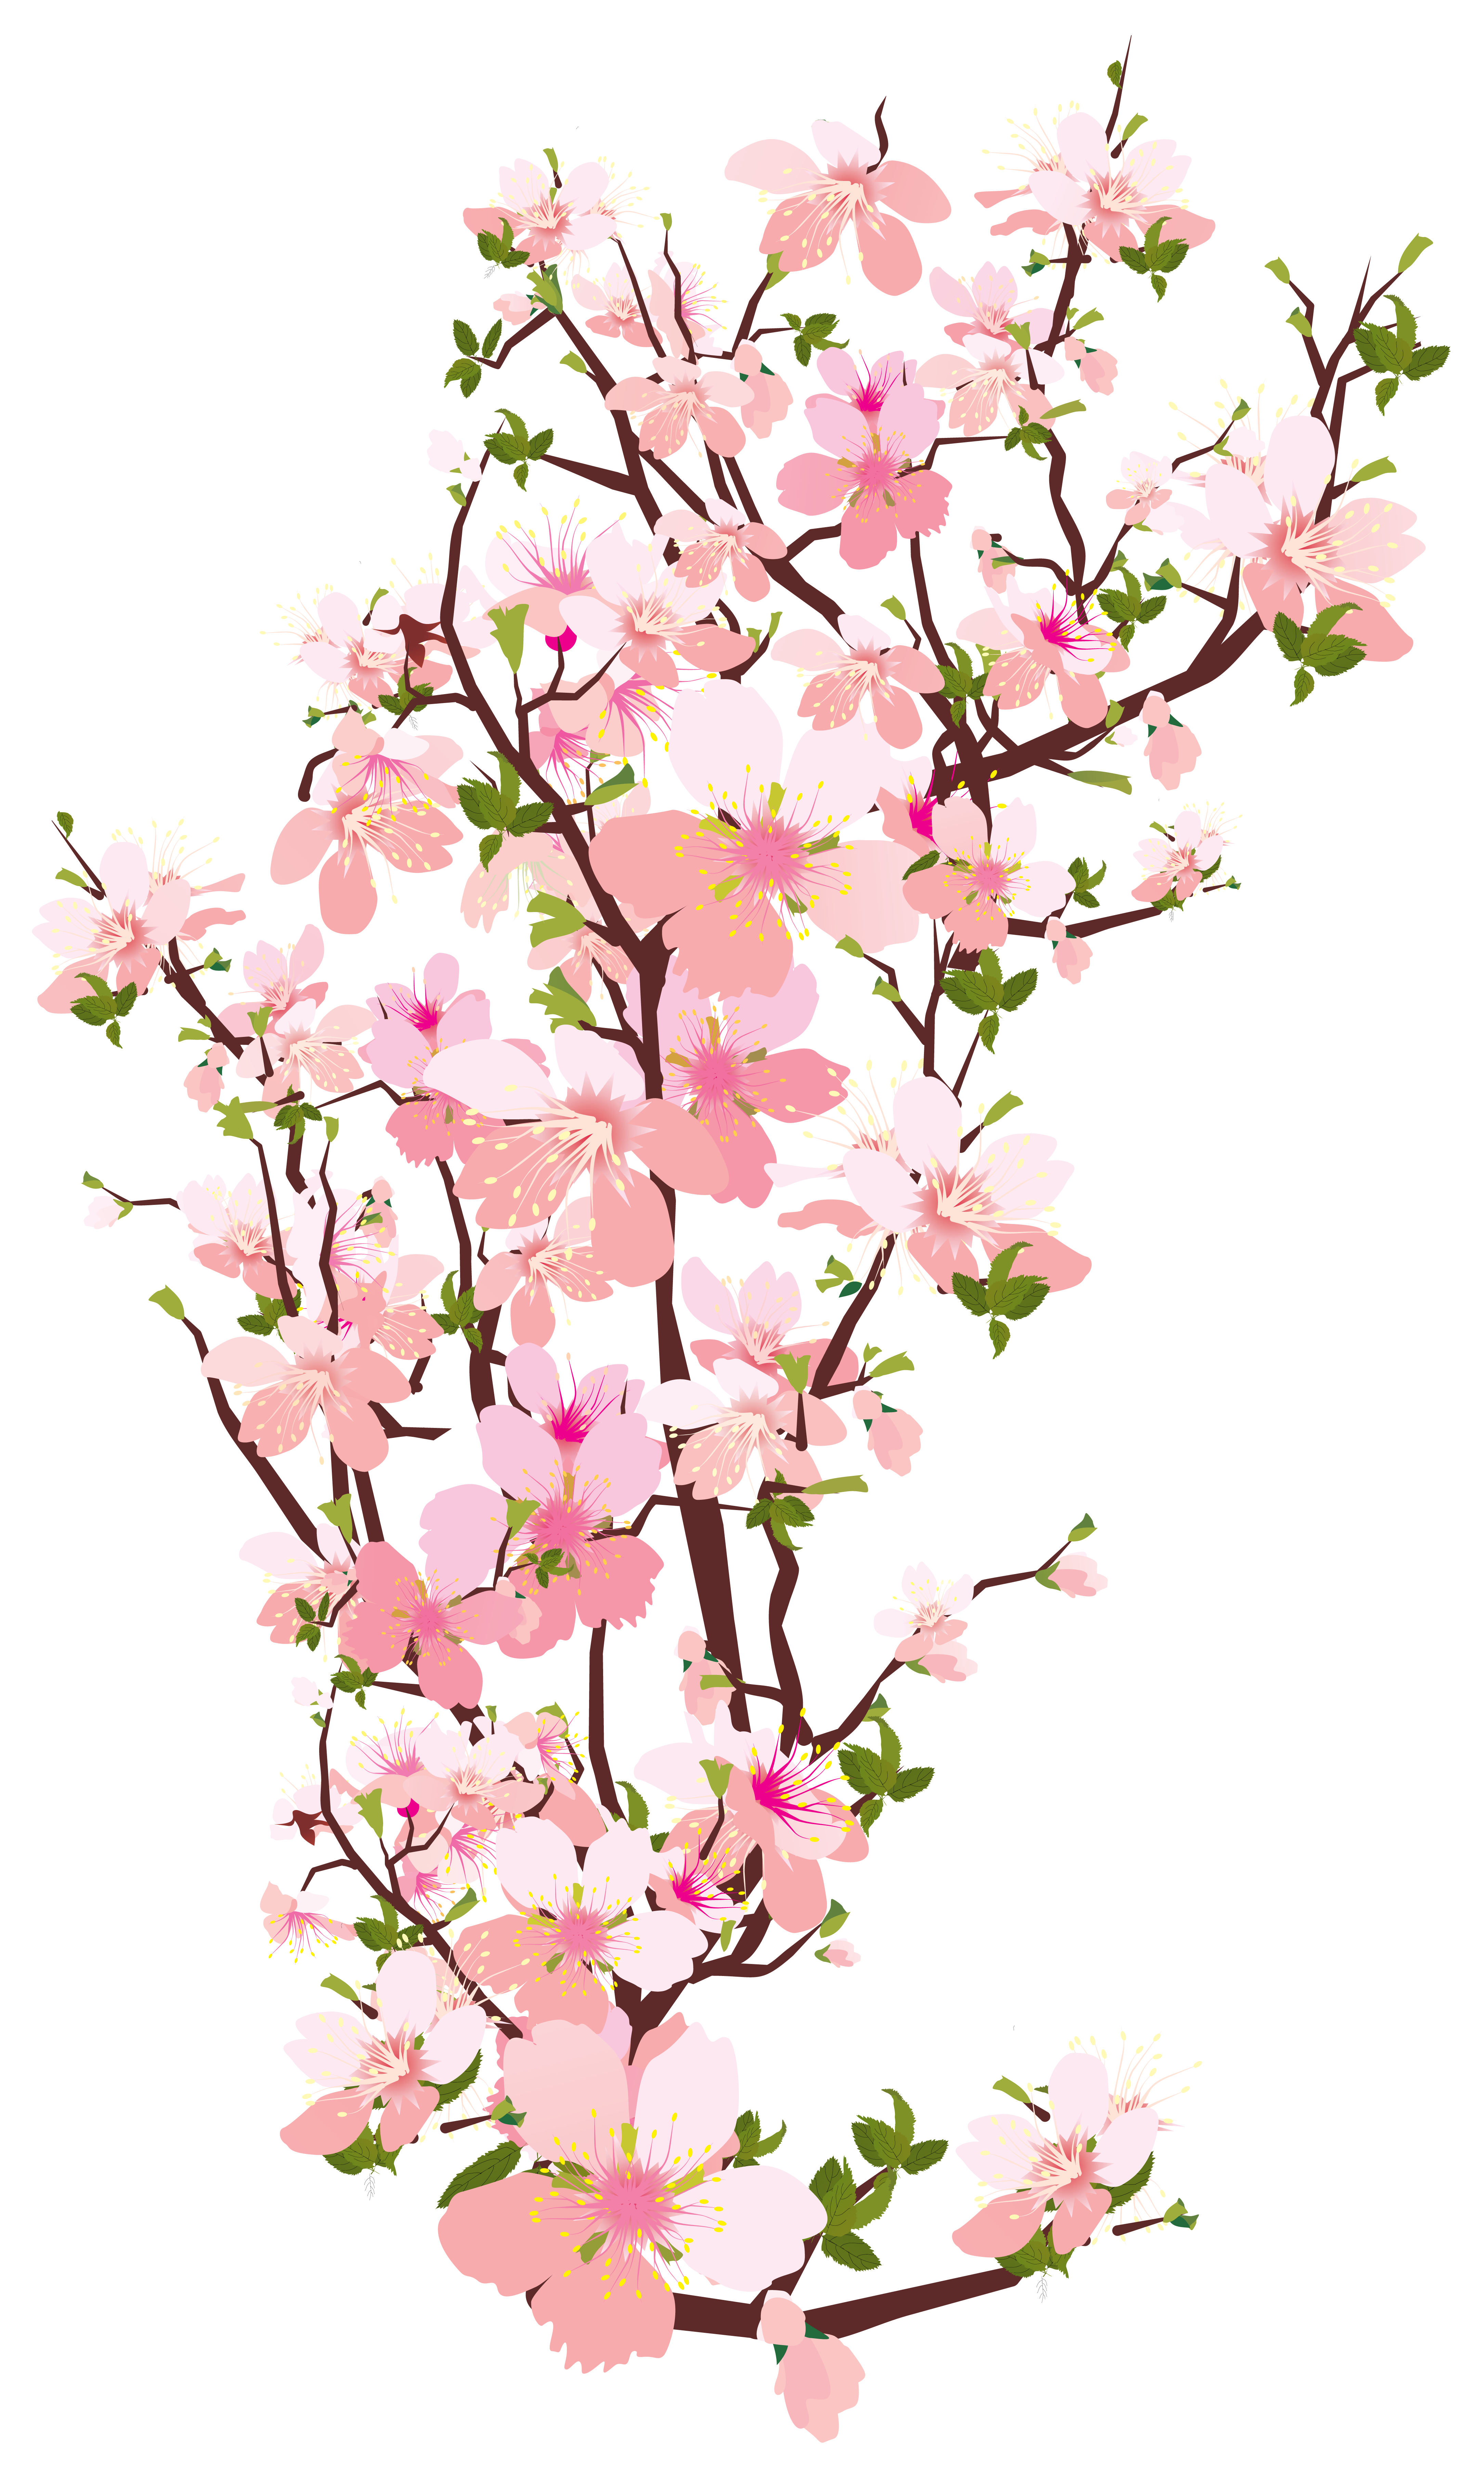 Tree limb with flowers clipart transparent background clip art freeuse library Pin by Can Sae-tang on peach blossom in 2019 | Art, Art ... clip art freeuse library